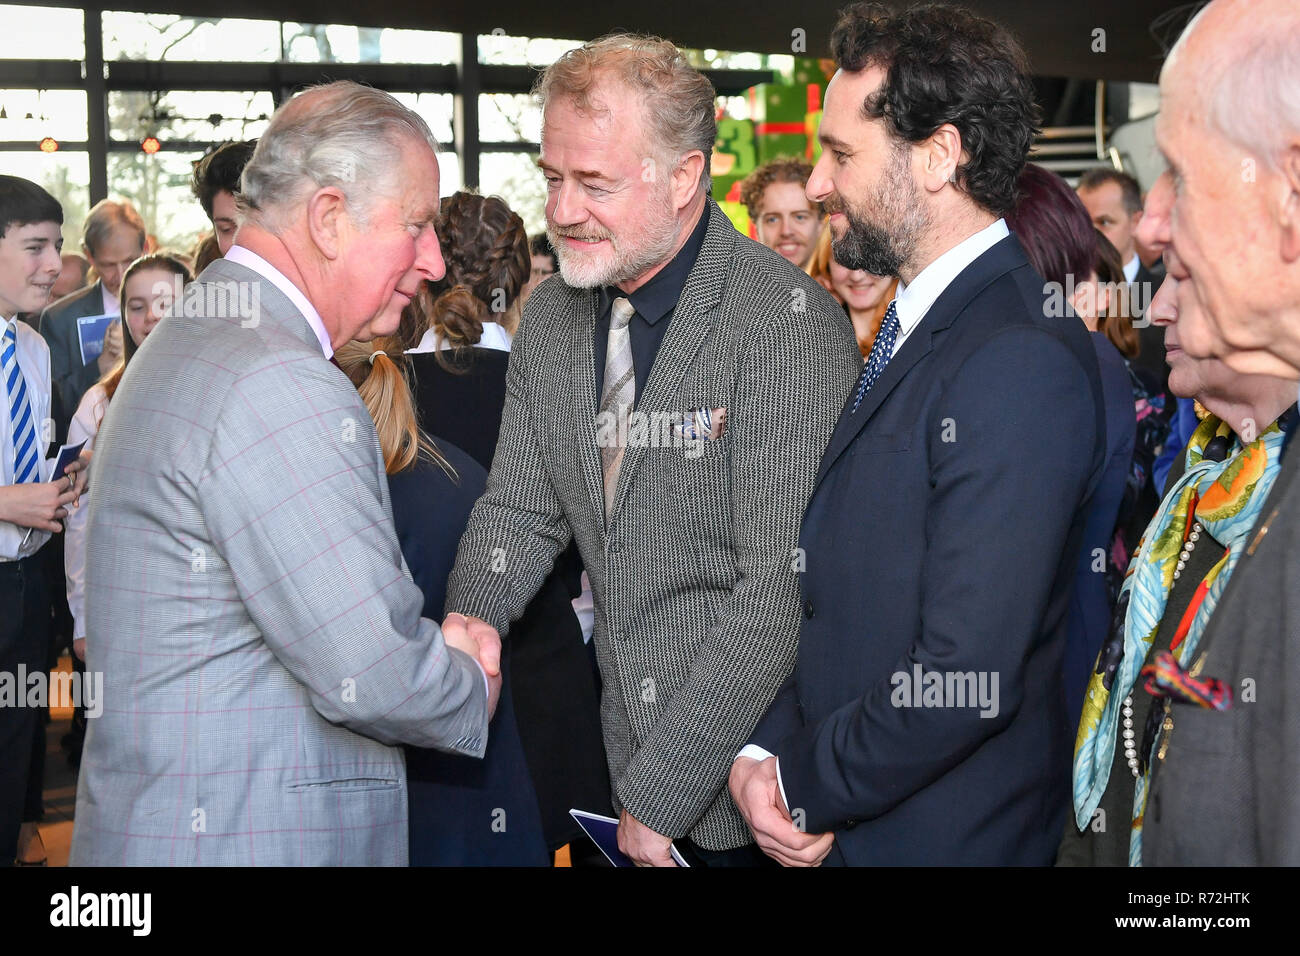 The Prince of Wales talks to actors Owen Teale and Matthew Rhys (right), at the Royal Welsh College of Music & Drama, where he is attending a special performance and reception. - Stock Image